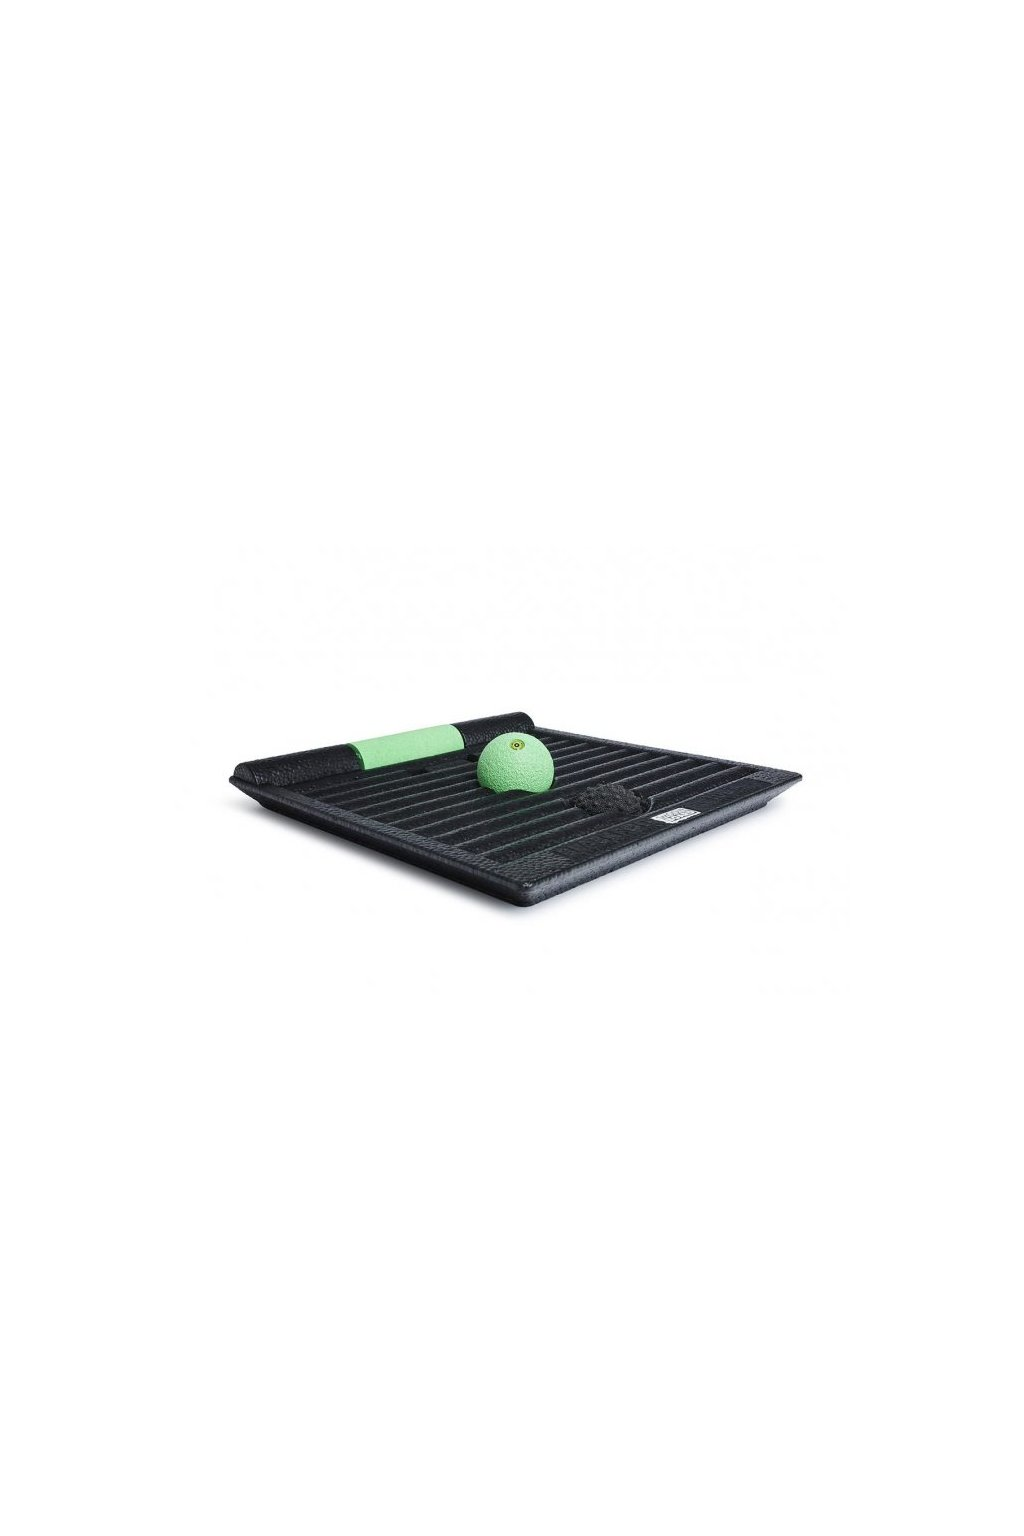 5870 blackroll smoove board black green(1)